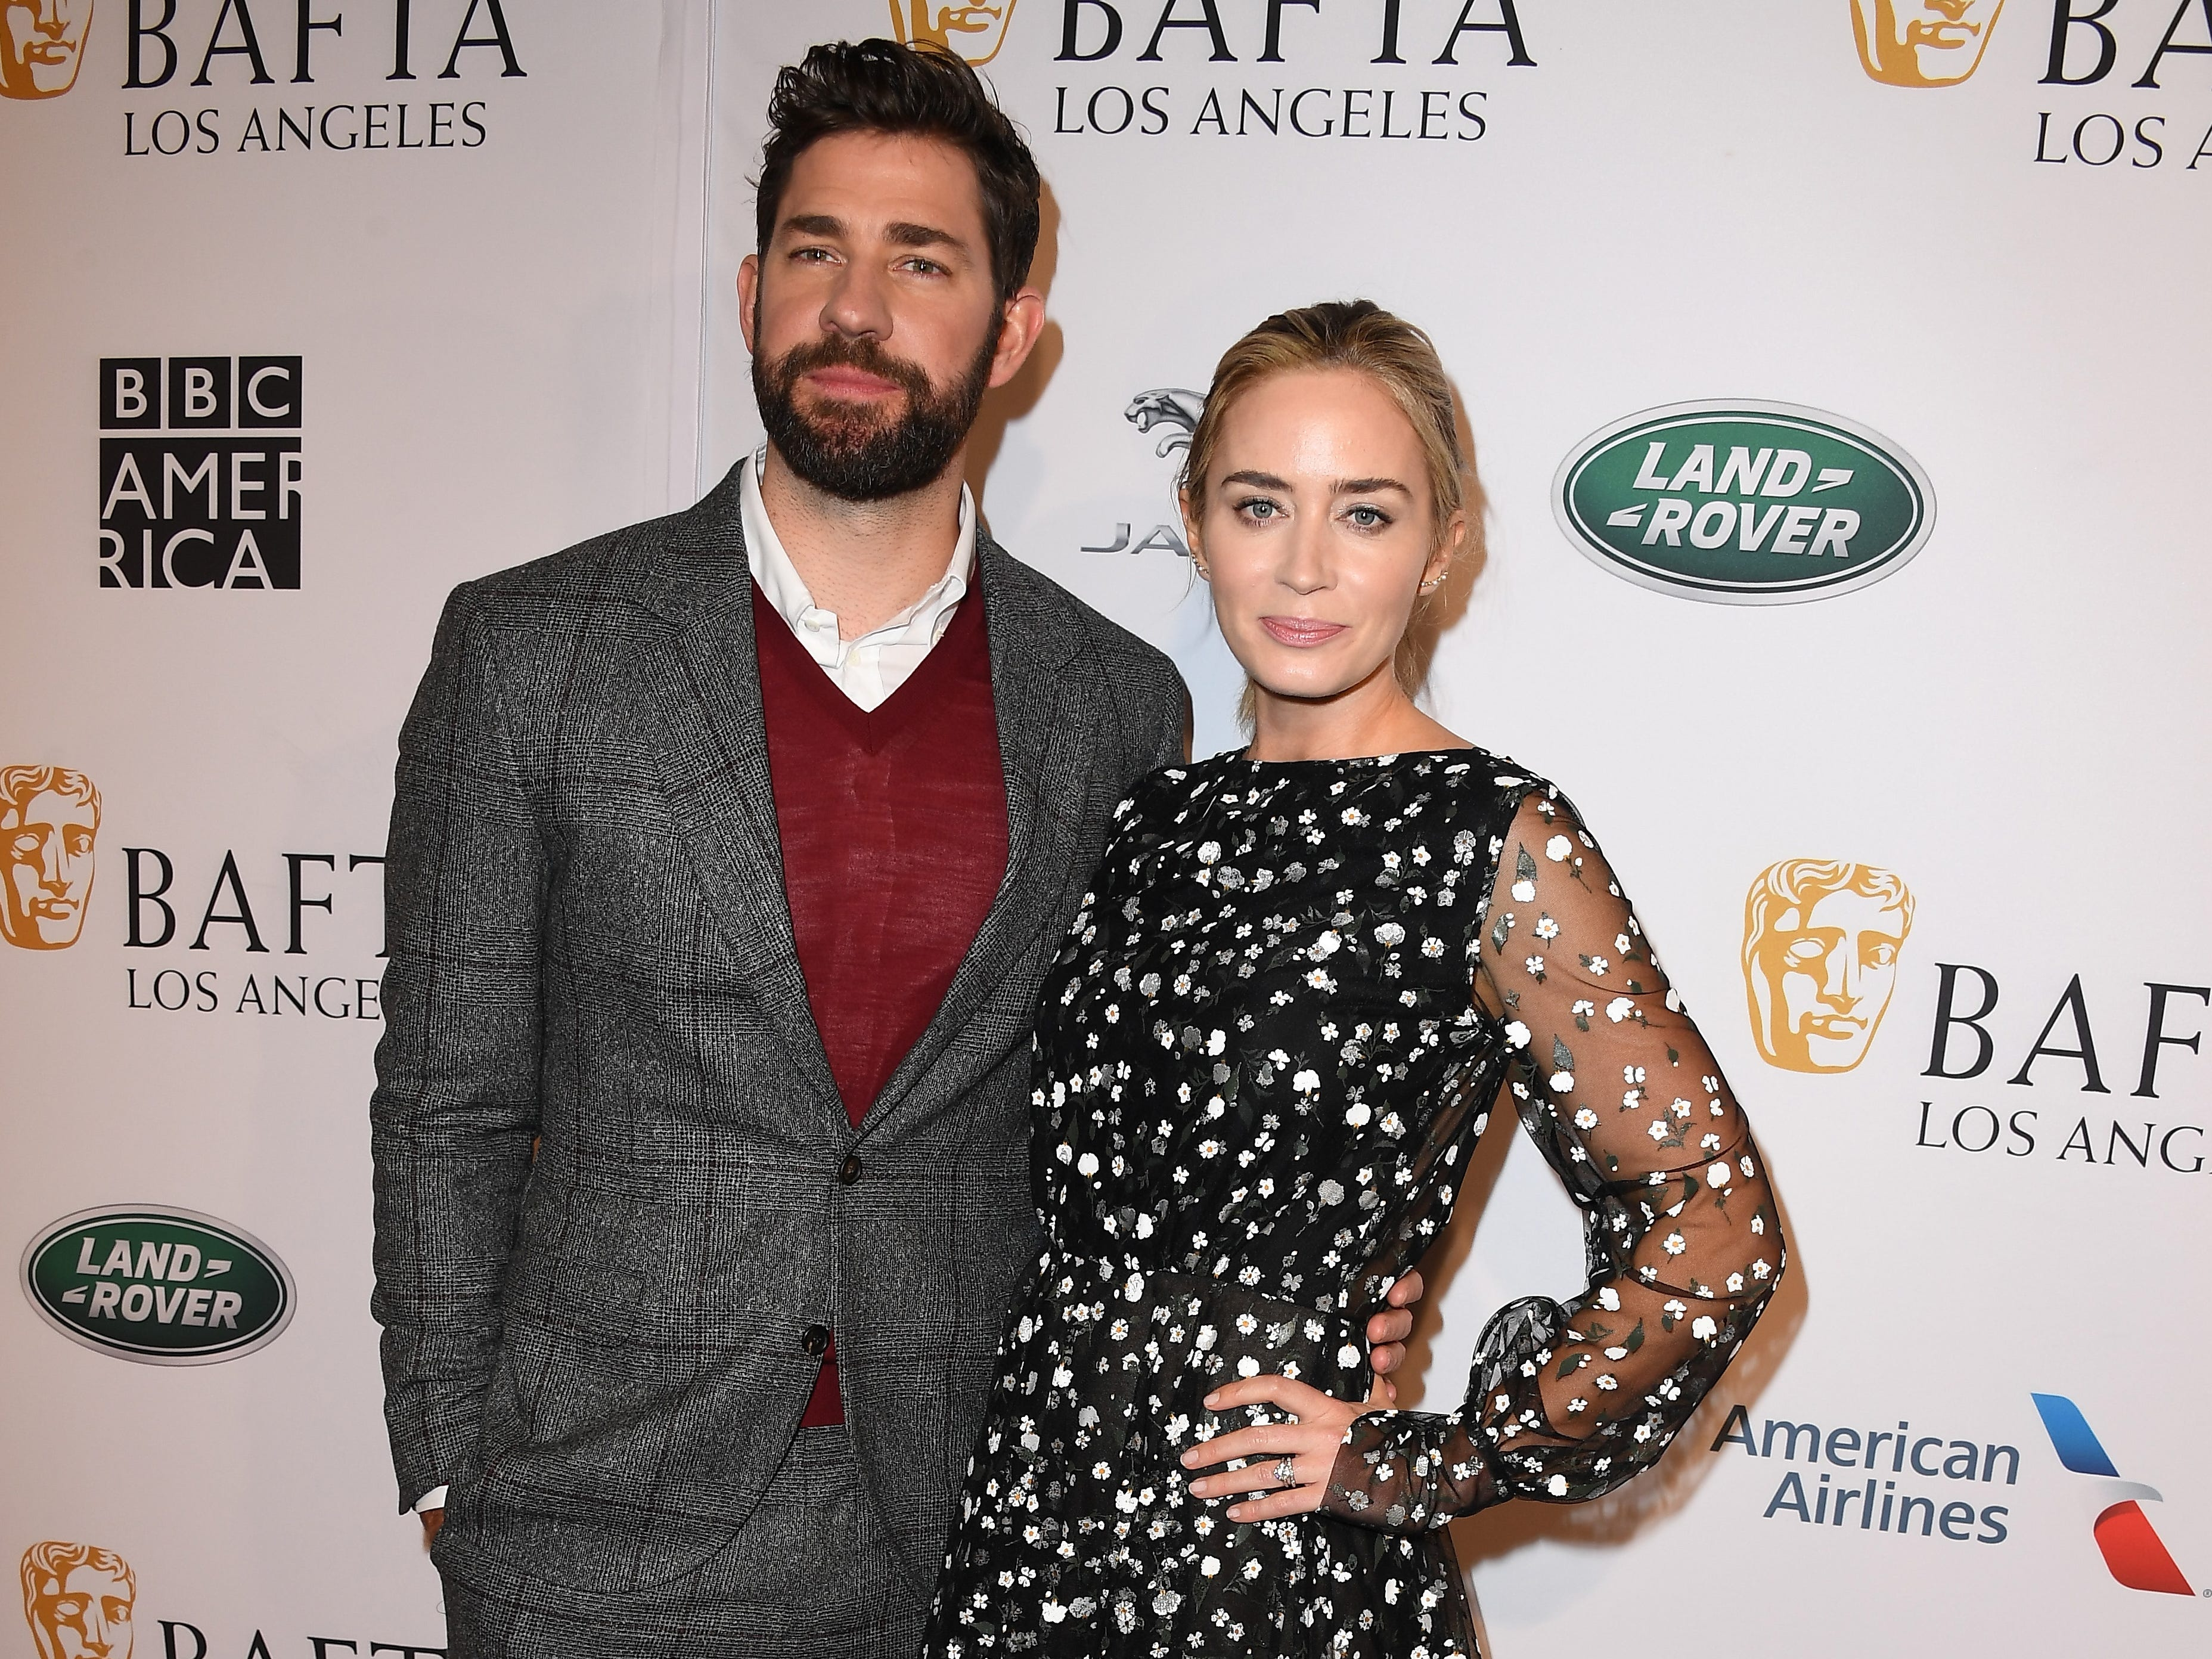 LOS ANGELES, CA - JANUARY 05:  John Krasinski and Emily Blunt attend The BAFTA Los Angeles Tea Party at Four Seasons Hotel Los Angeles at Beverly Hills on January 5, 2019 in Los Angeles, California.  (Photo by Steve Granitz/WireImage) ORG XMIT: 775261683 ORIG FILE ID: 1077924706